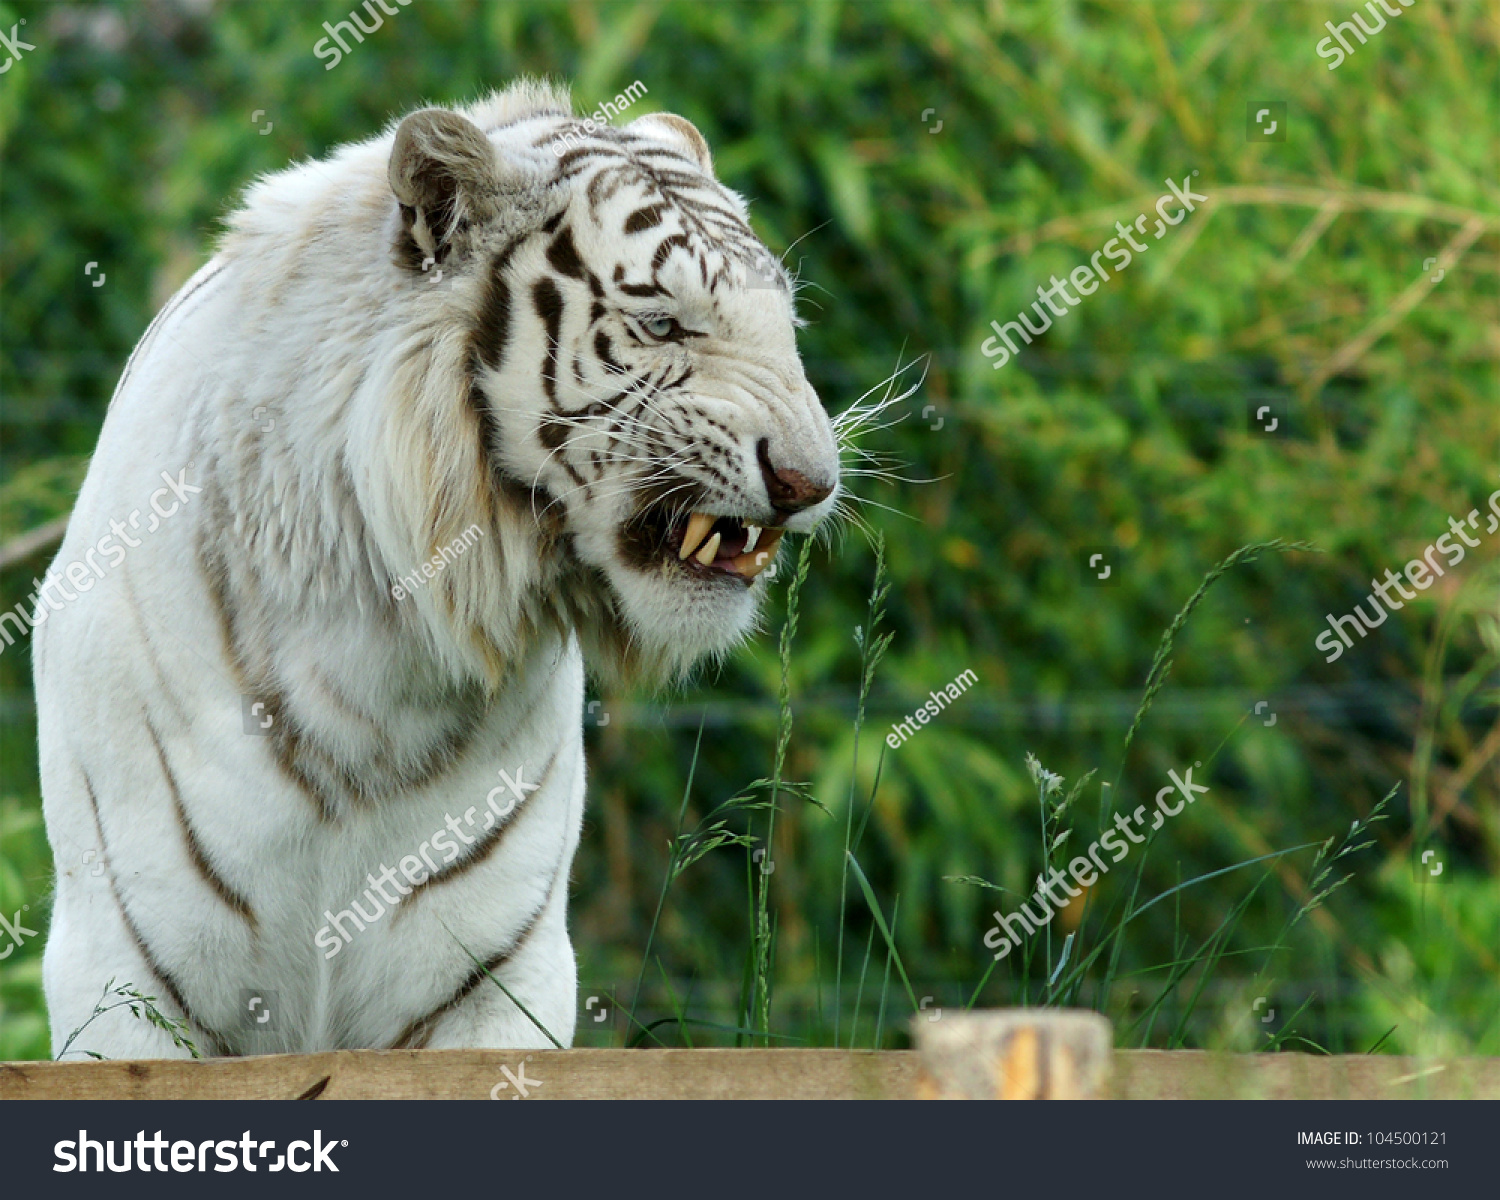 roaring white tiger stock photo (edit now) 104500121 - shutterstock